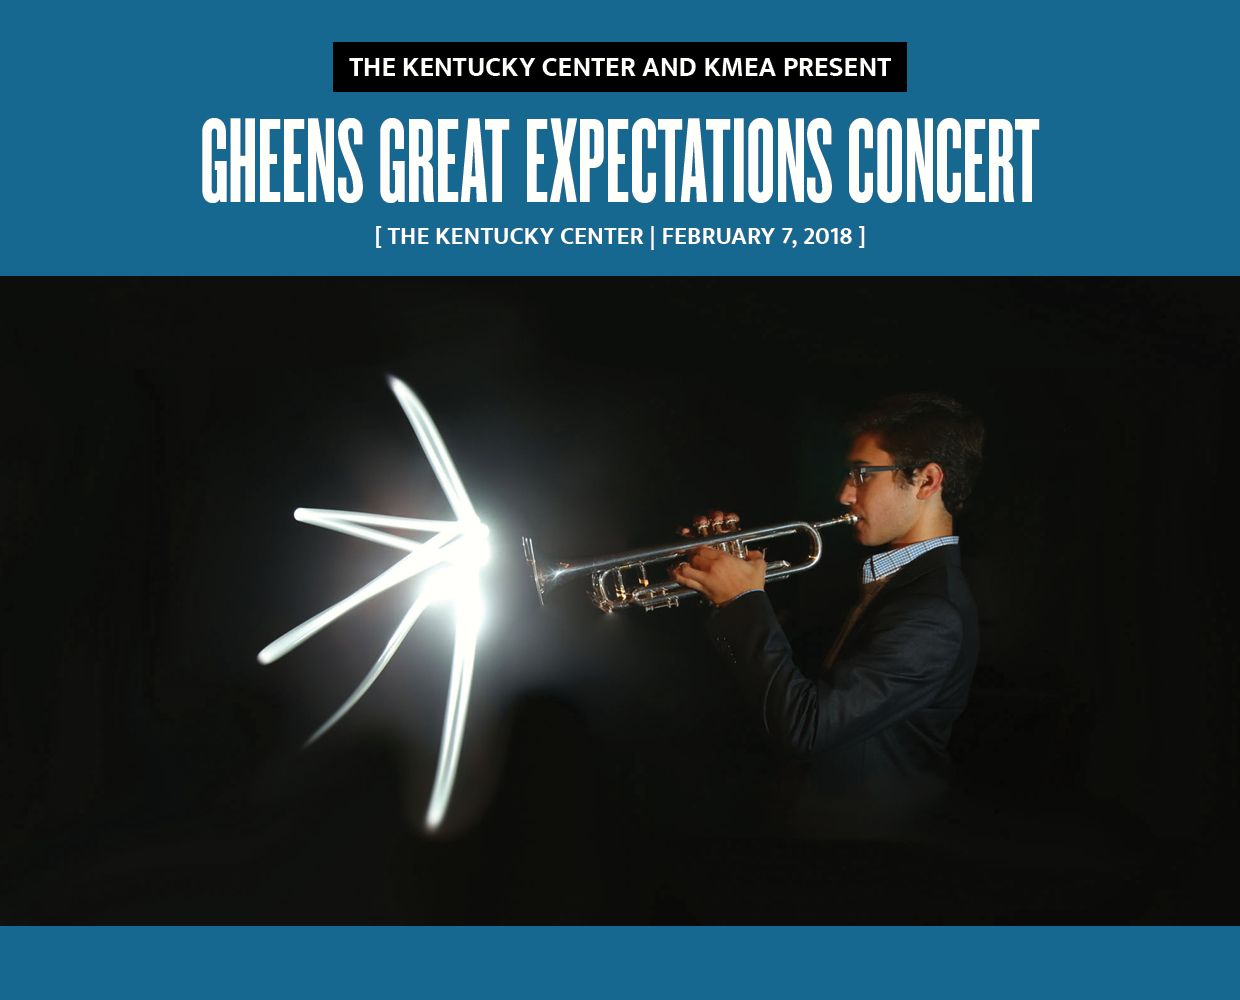 February 7 - Gheens Great Expectations Concert image